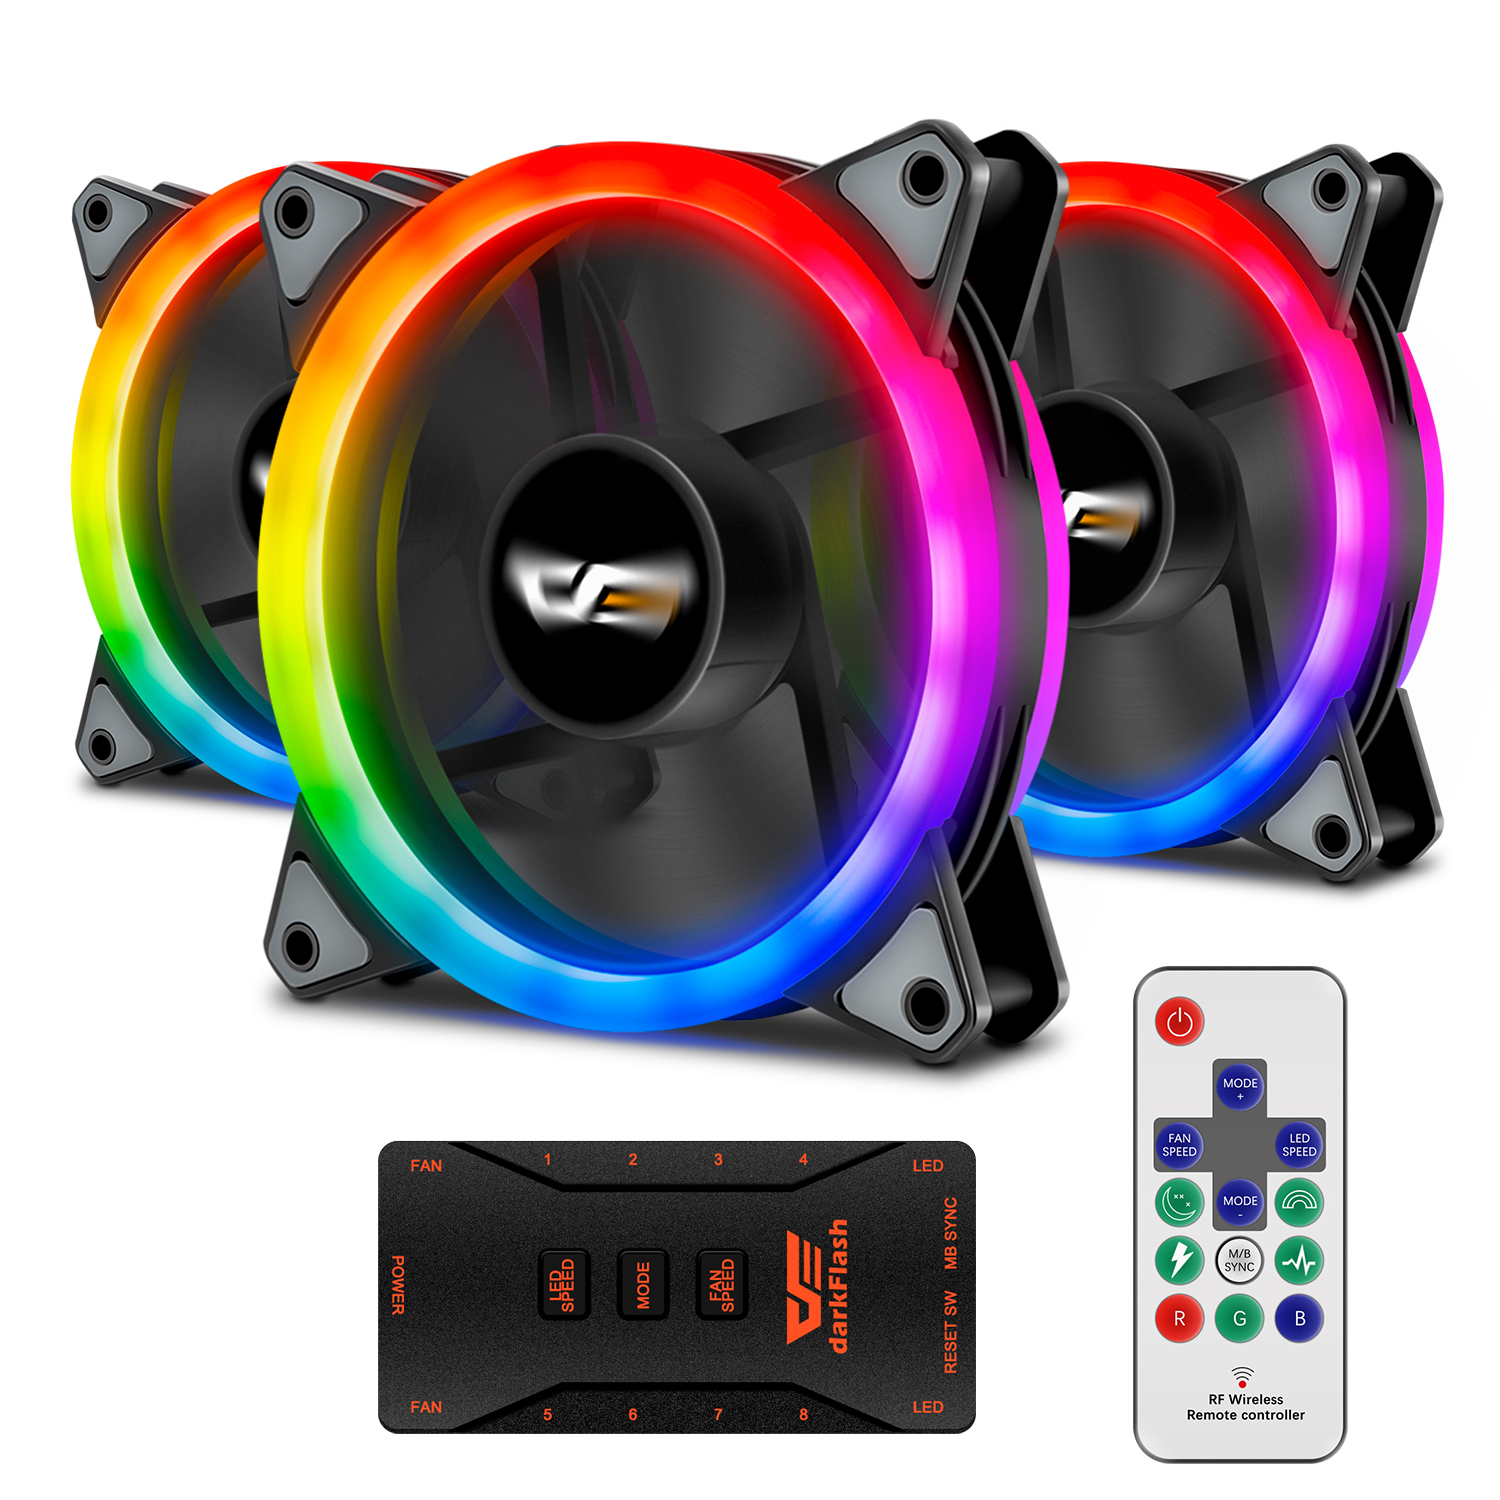 darkFlash Aurora DR12 3IN1 Kit Case Fan 3-Pack RGB LED 120mm High Performance High Airflow colorful PC CPU Computer Case Cooling Cooler with Controller (DR12 3IN1)